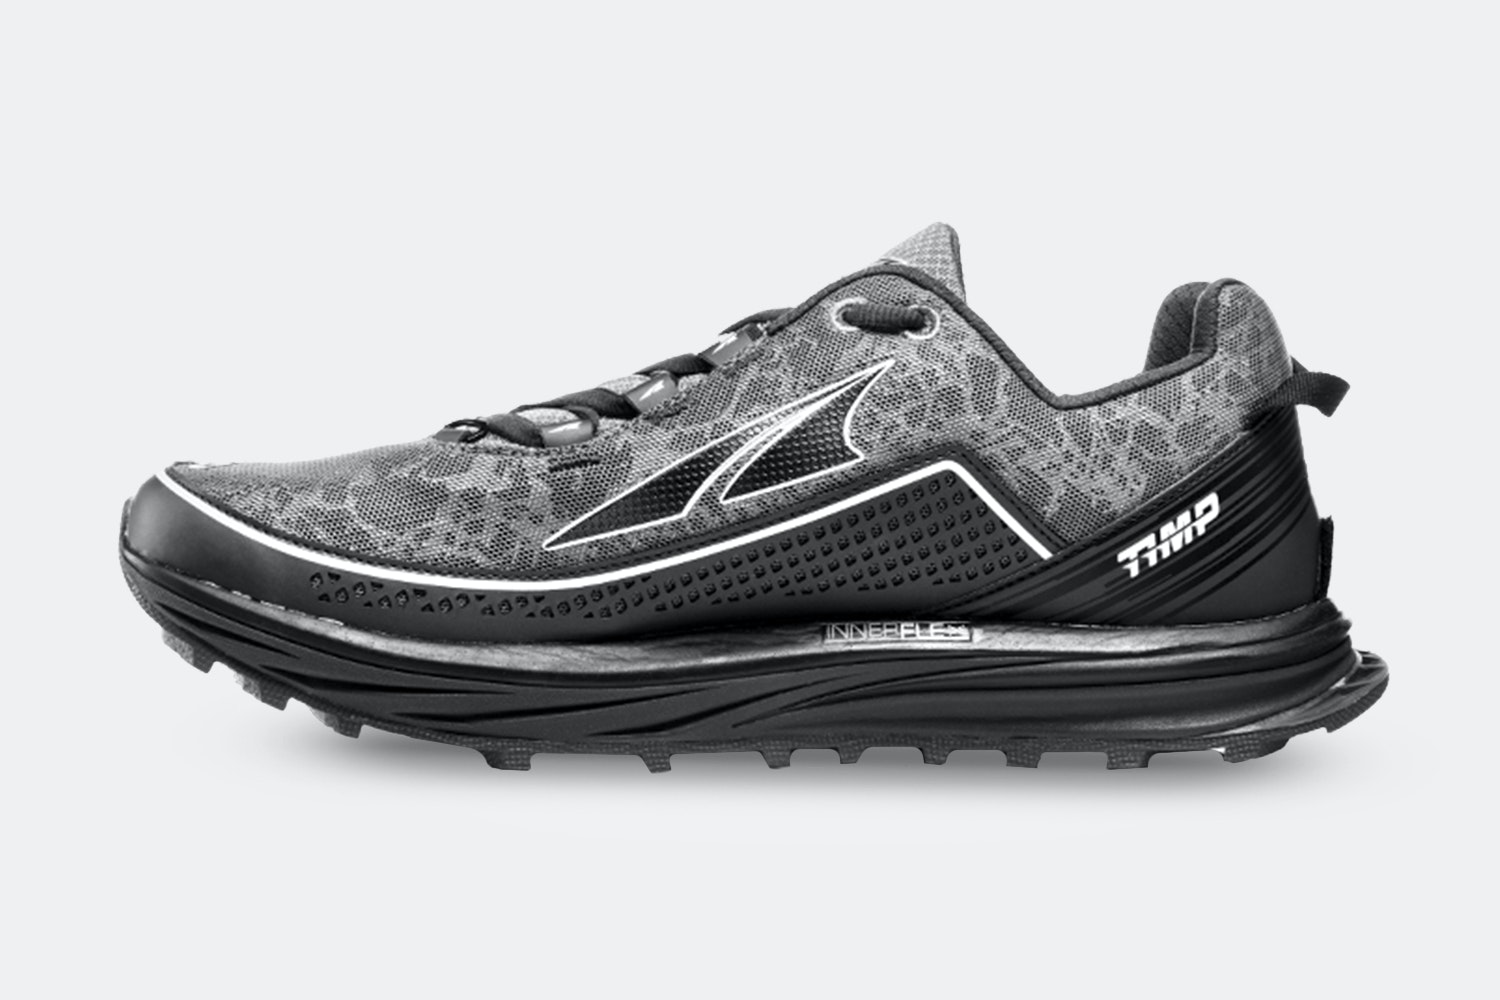 Altra Timp Trail Running Shoes